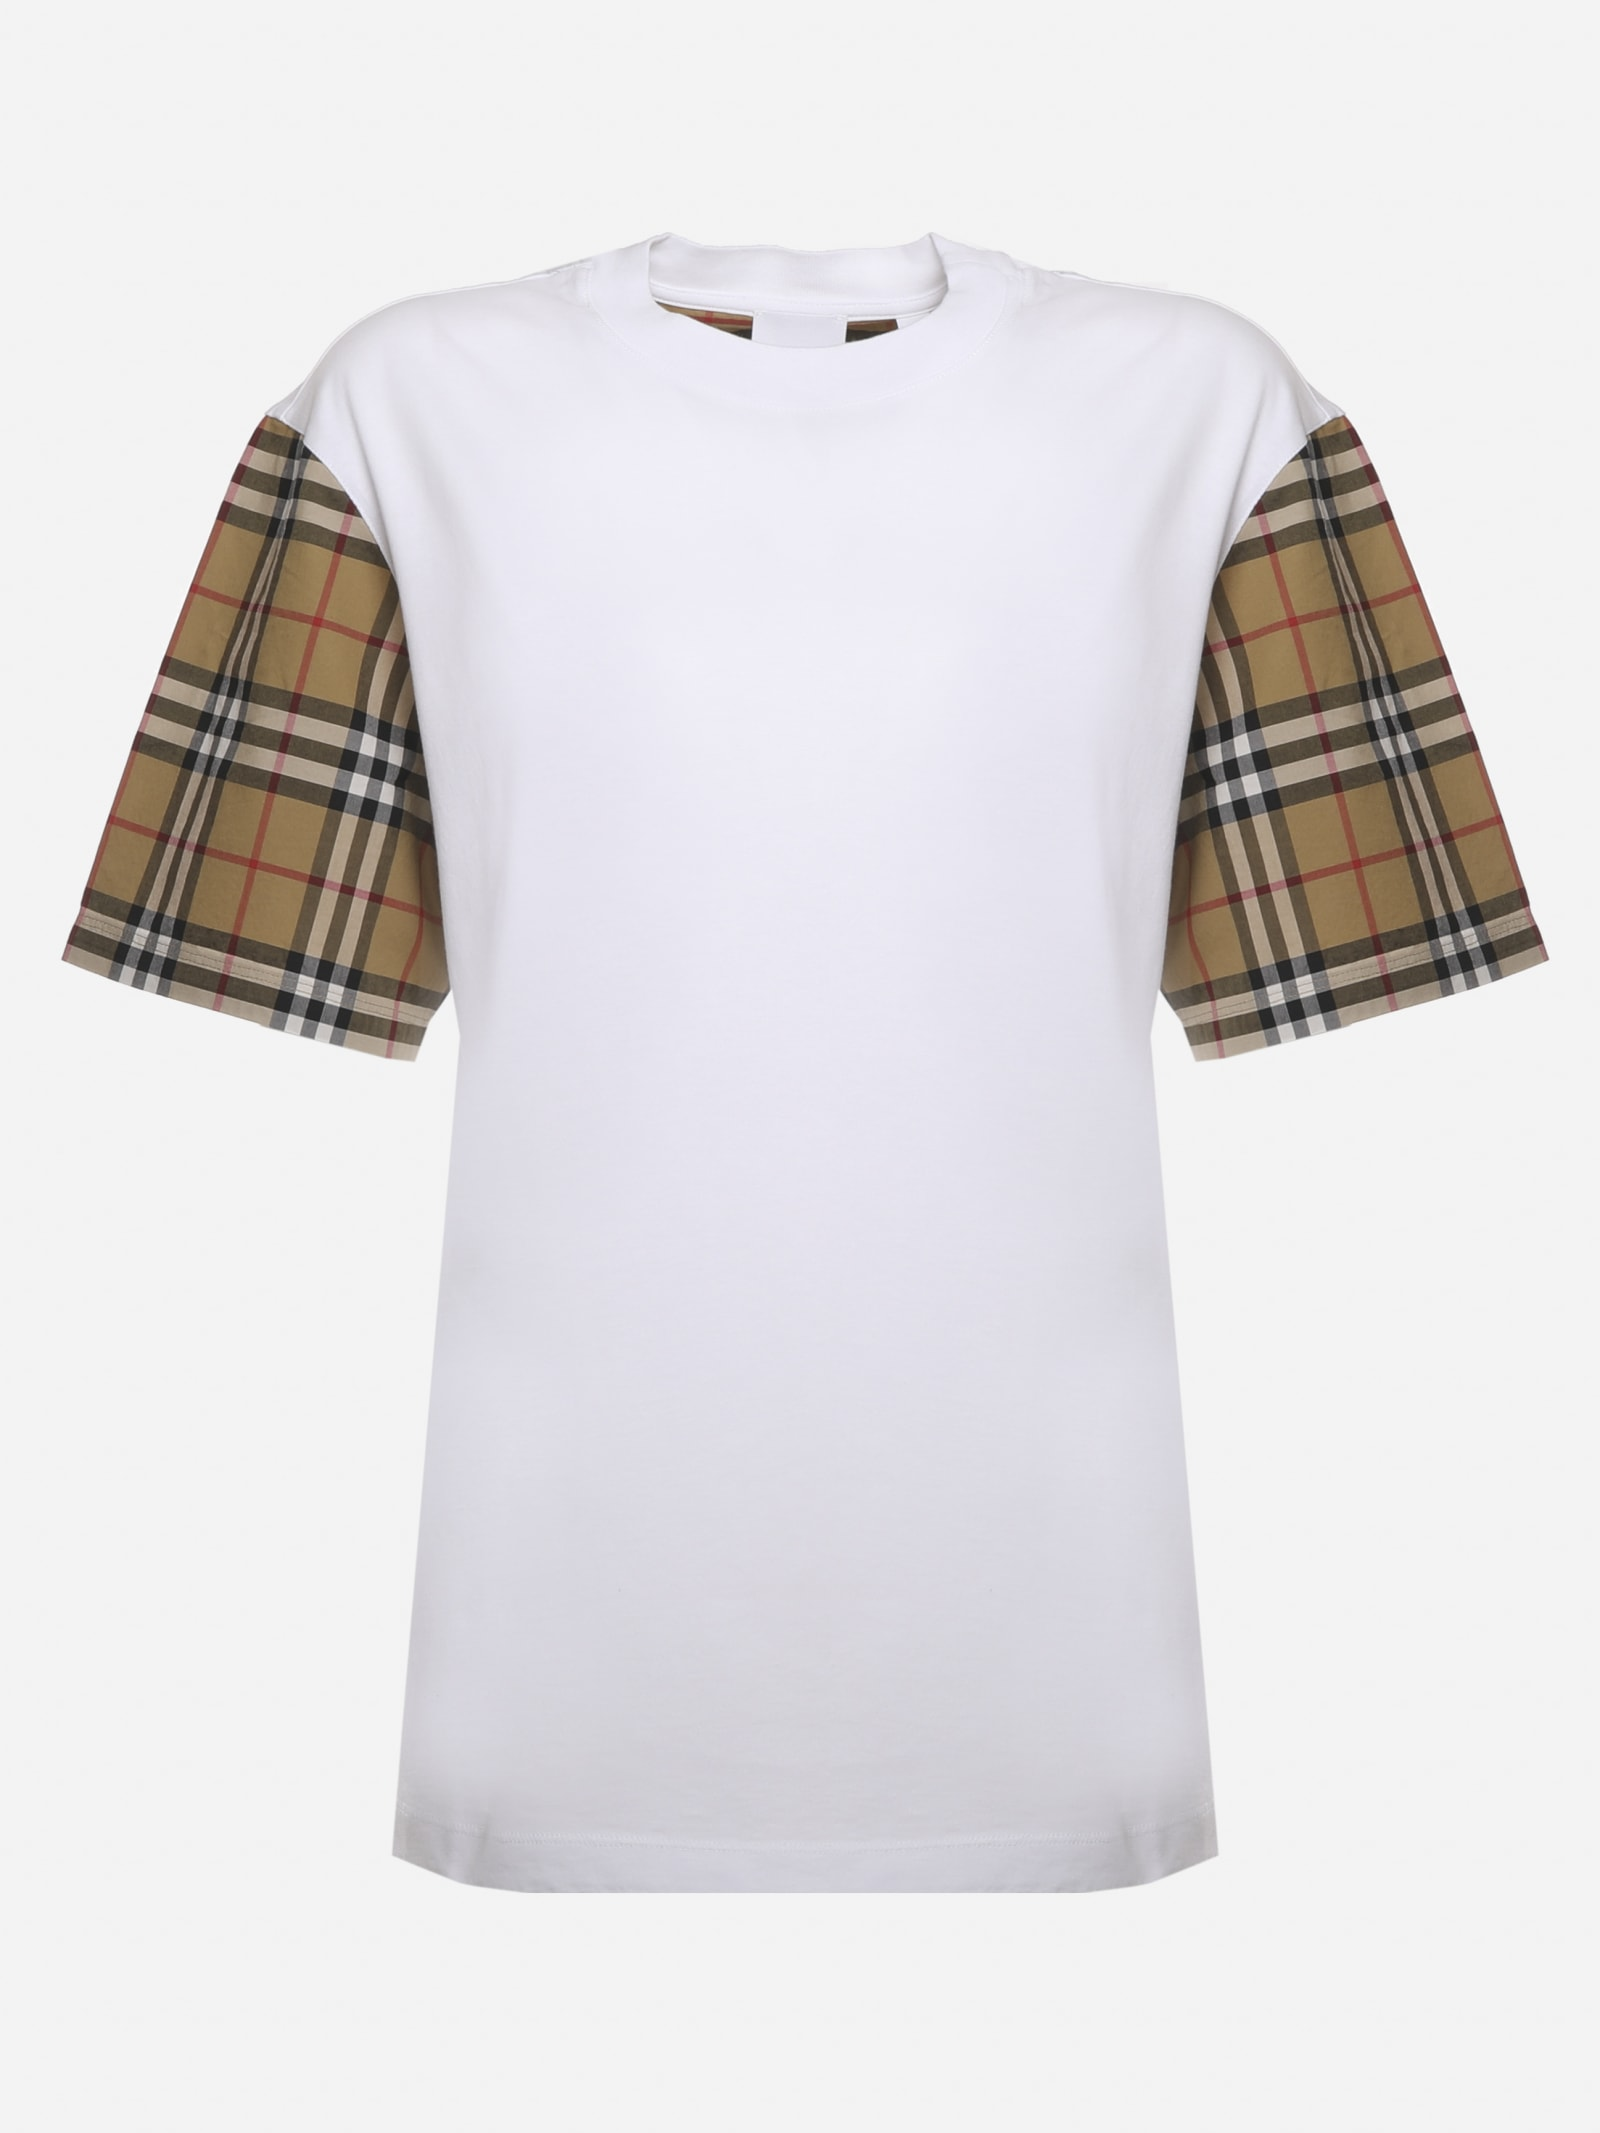 Burberry COTTON T-SHIRT WITH VINTAGE CHECK SLEEVES